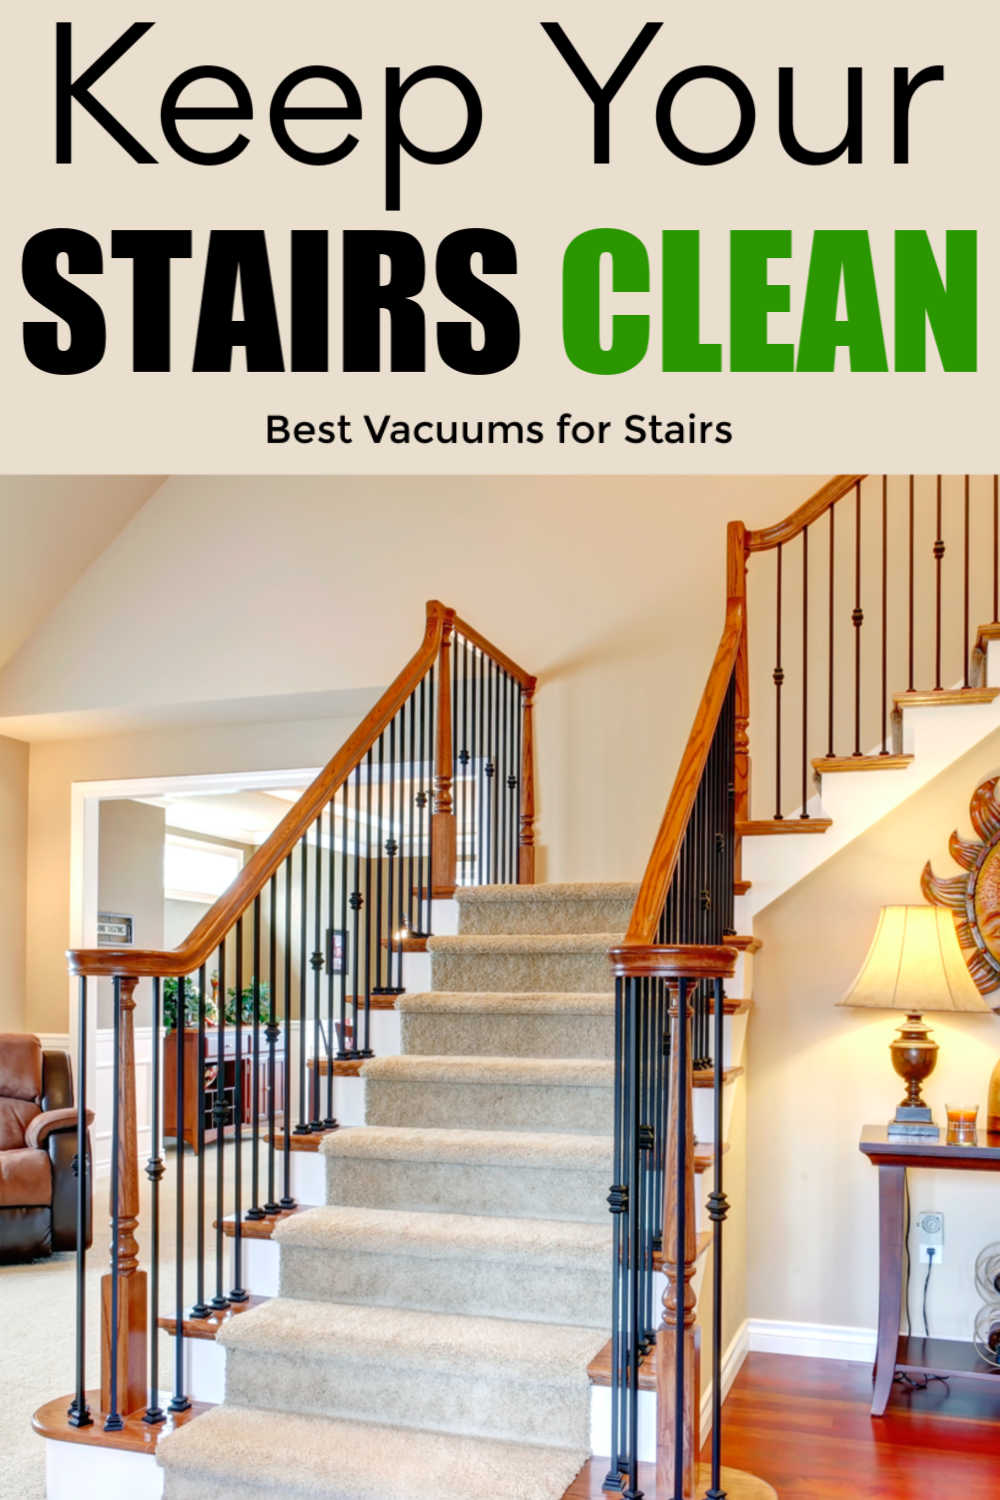 Best Vacuum Cleaners For Stairs - Portable and Cordless